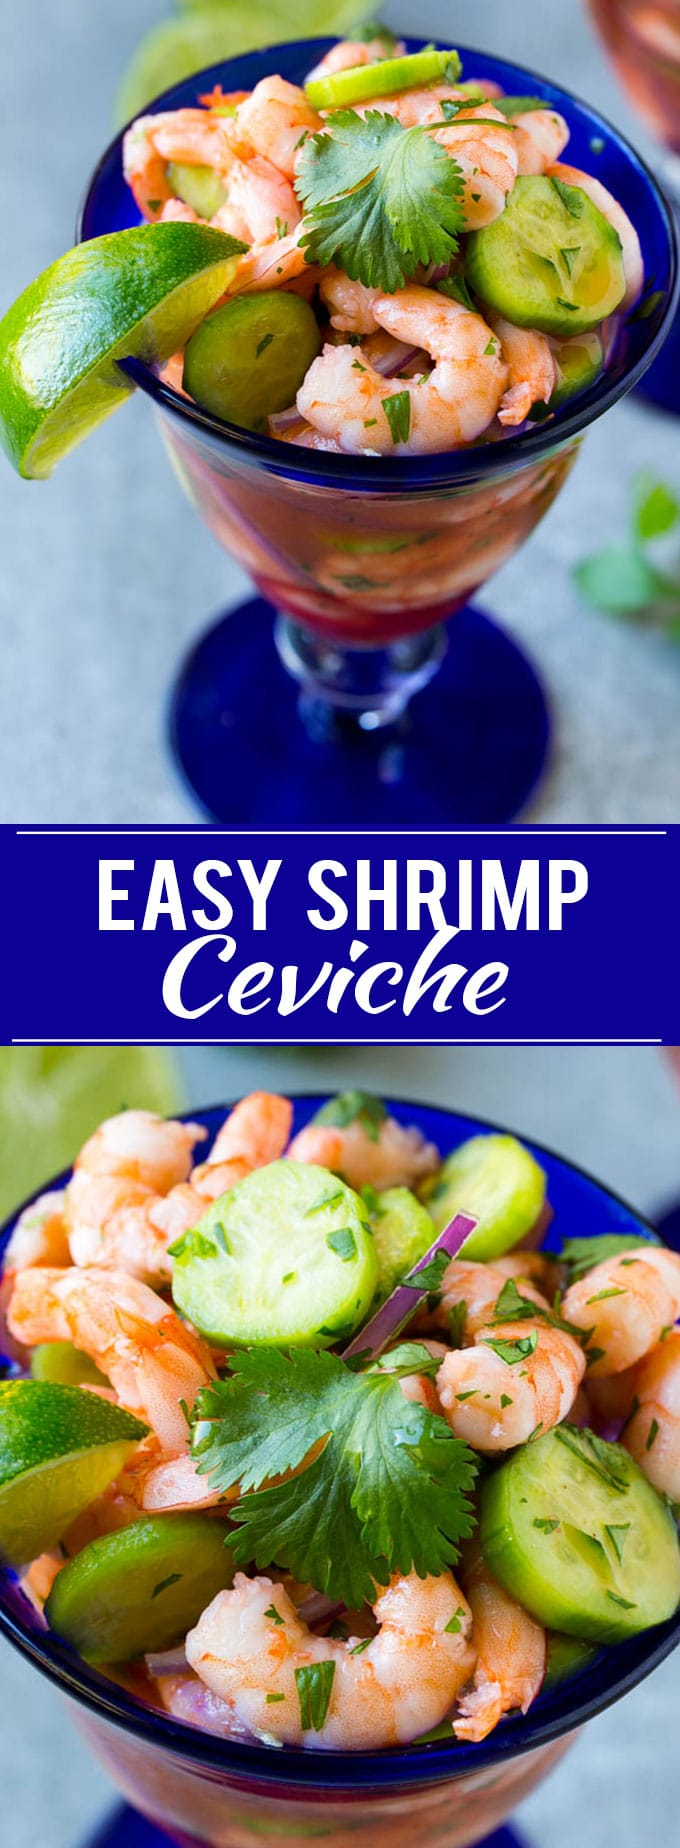 Shrimp Ceviche Recipe | Easy Shrimp Recipe | Low Carb Shrimp Recipe | Shrimp Appetizer